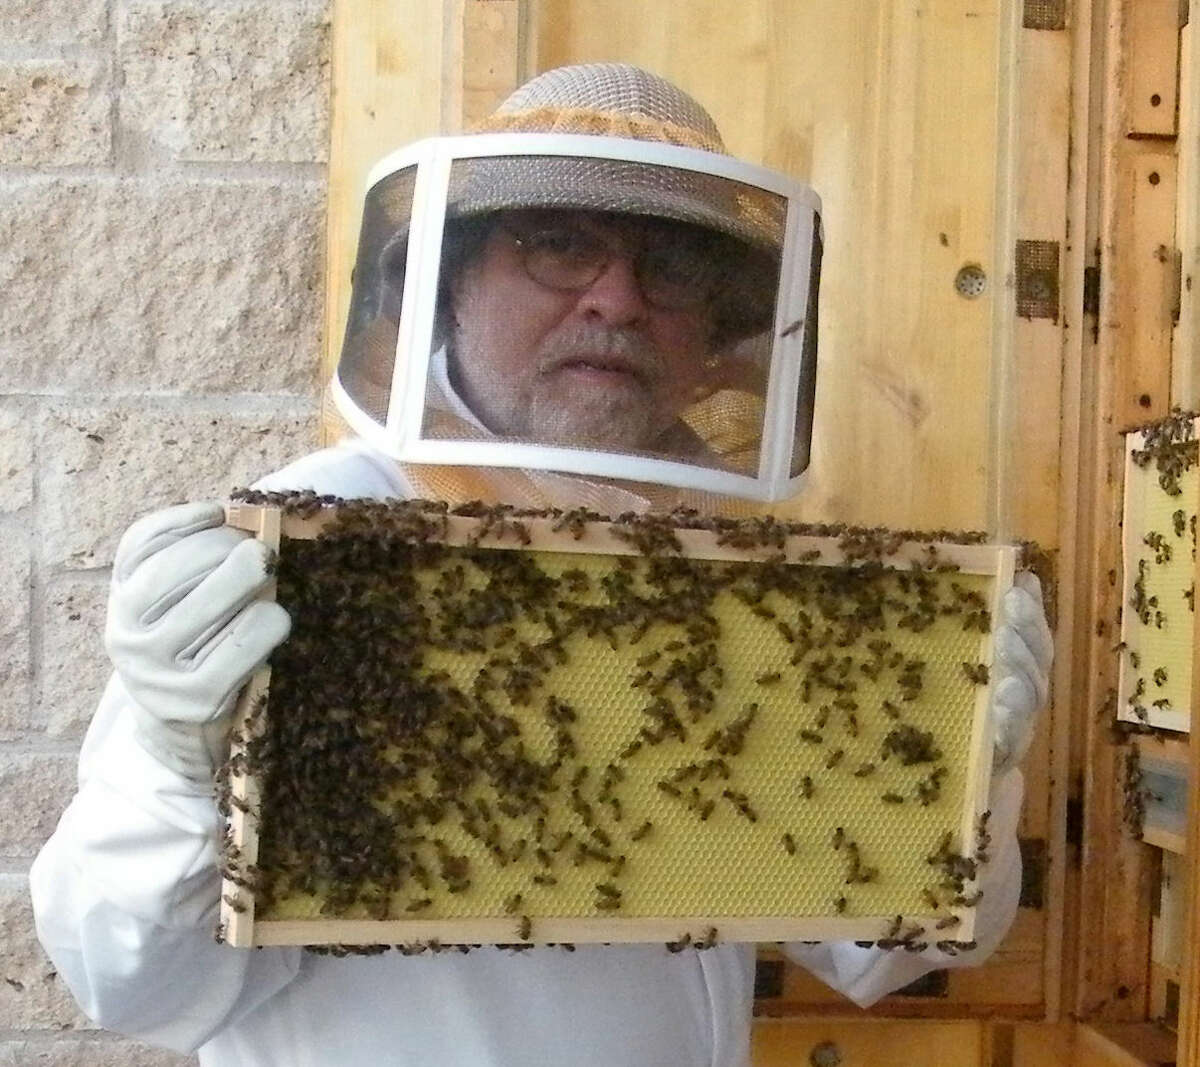 Michael Nickell, with Sibley Learning Center, shows one of the trays of bees.